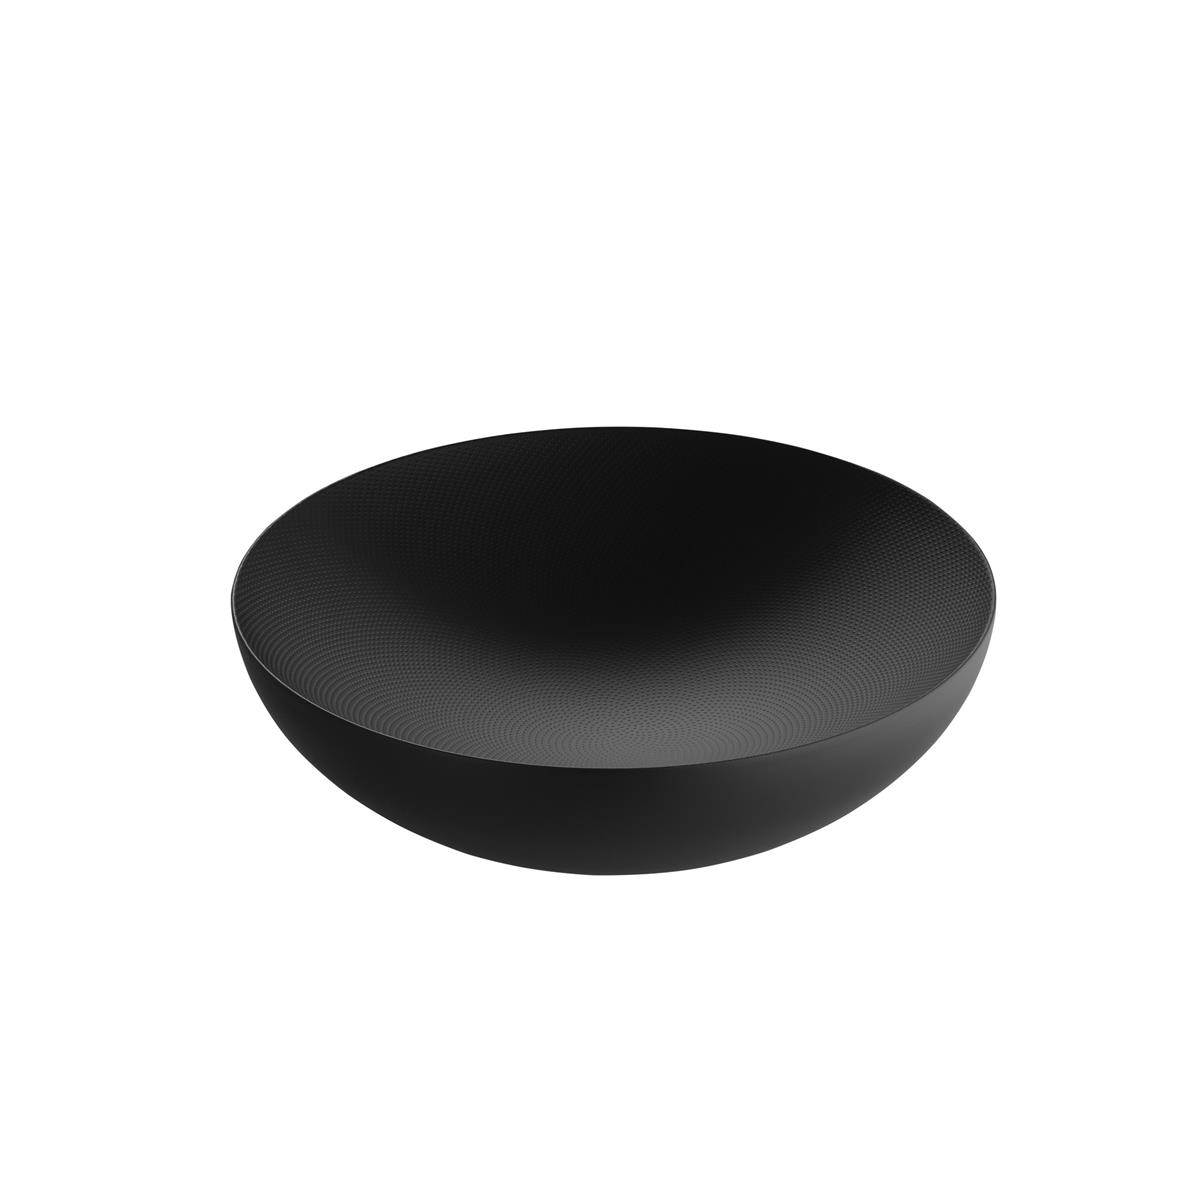 Alessi-Double Double-walled bowl in colored steel and resin, black